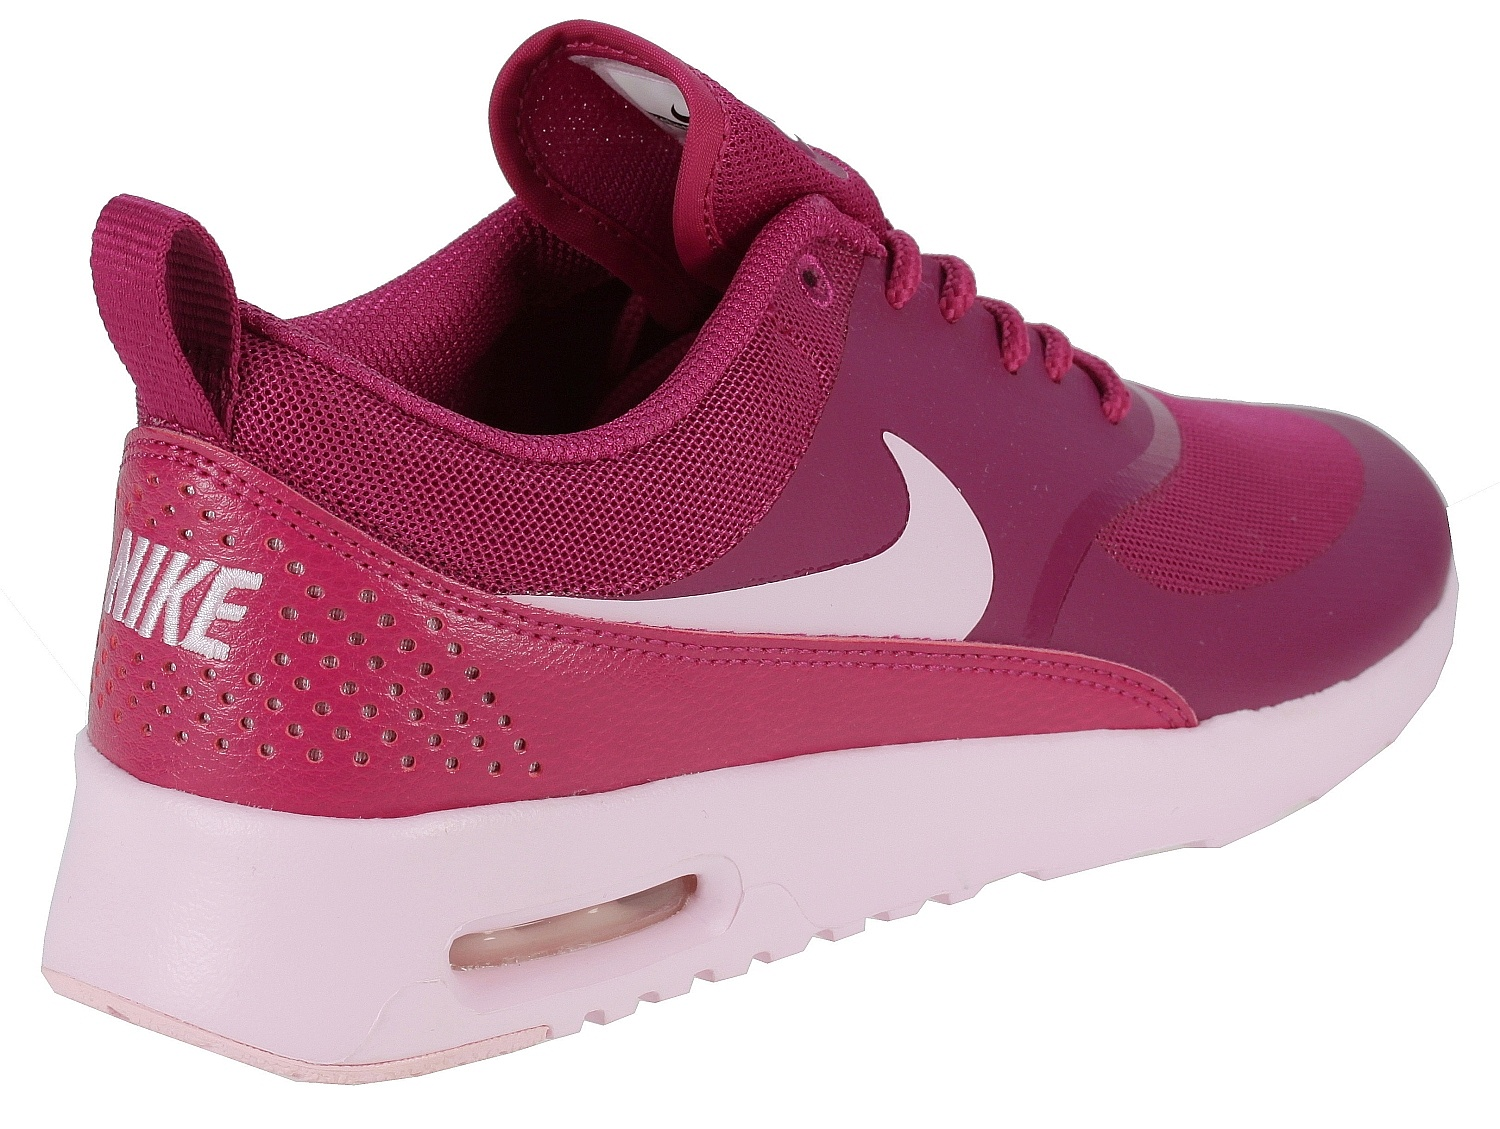 boty nike air max thea sport fuchsia prism pink. Black Bedroom Furniture Sets. Home Design Ideas